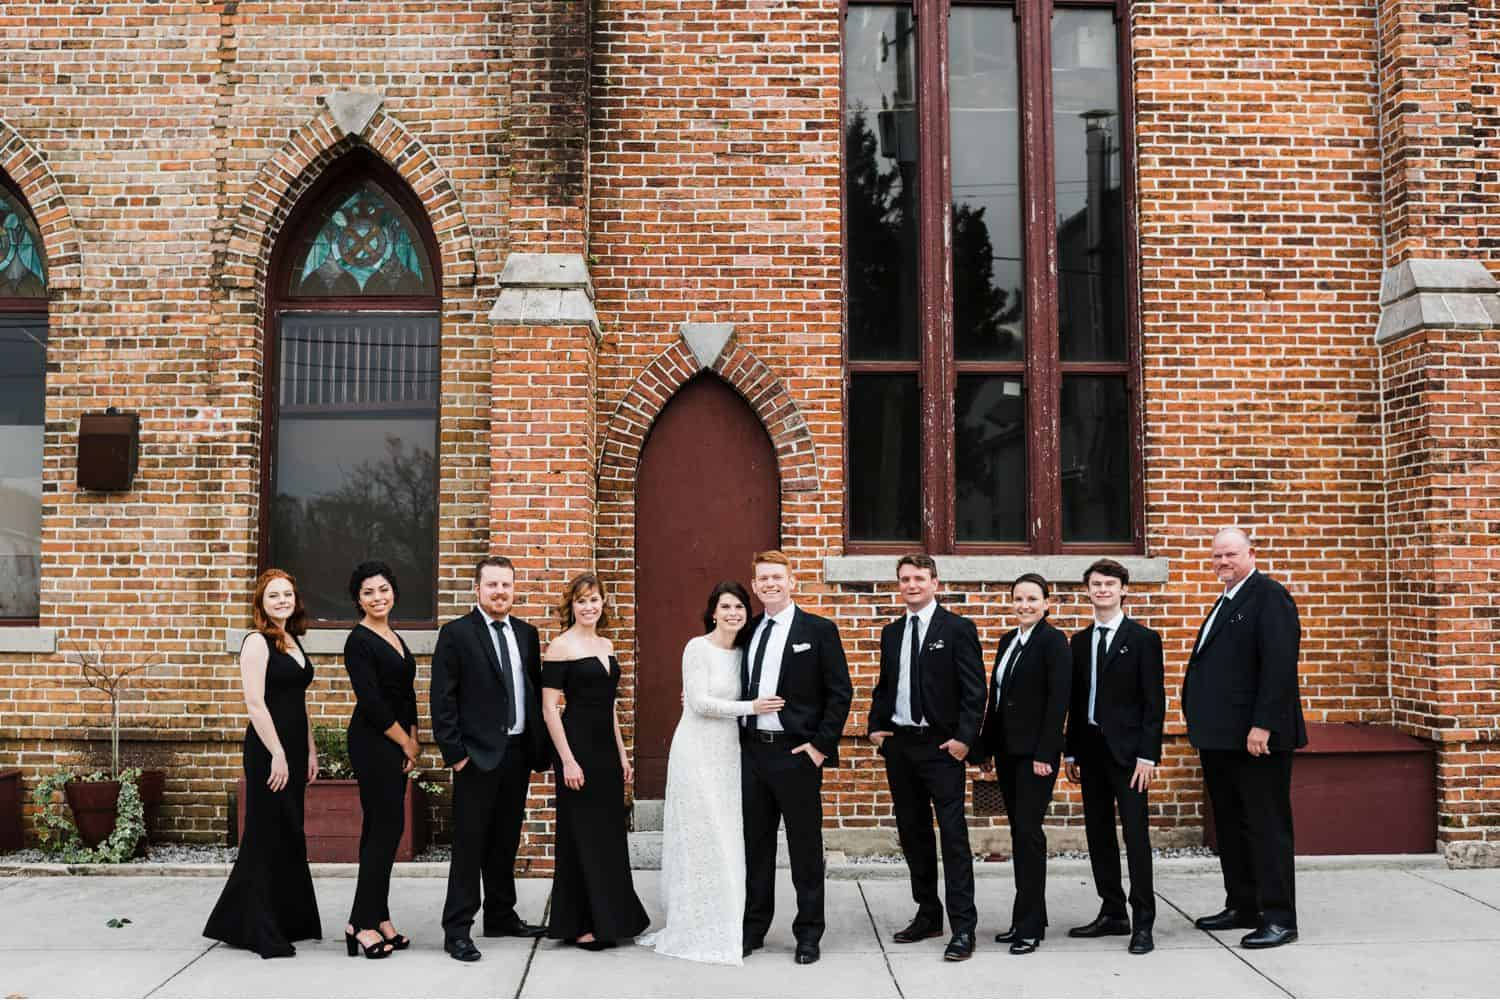 A wedding party dressed all in black poses before a brick cathedral.